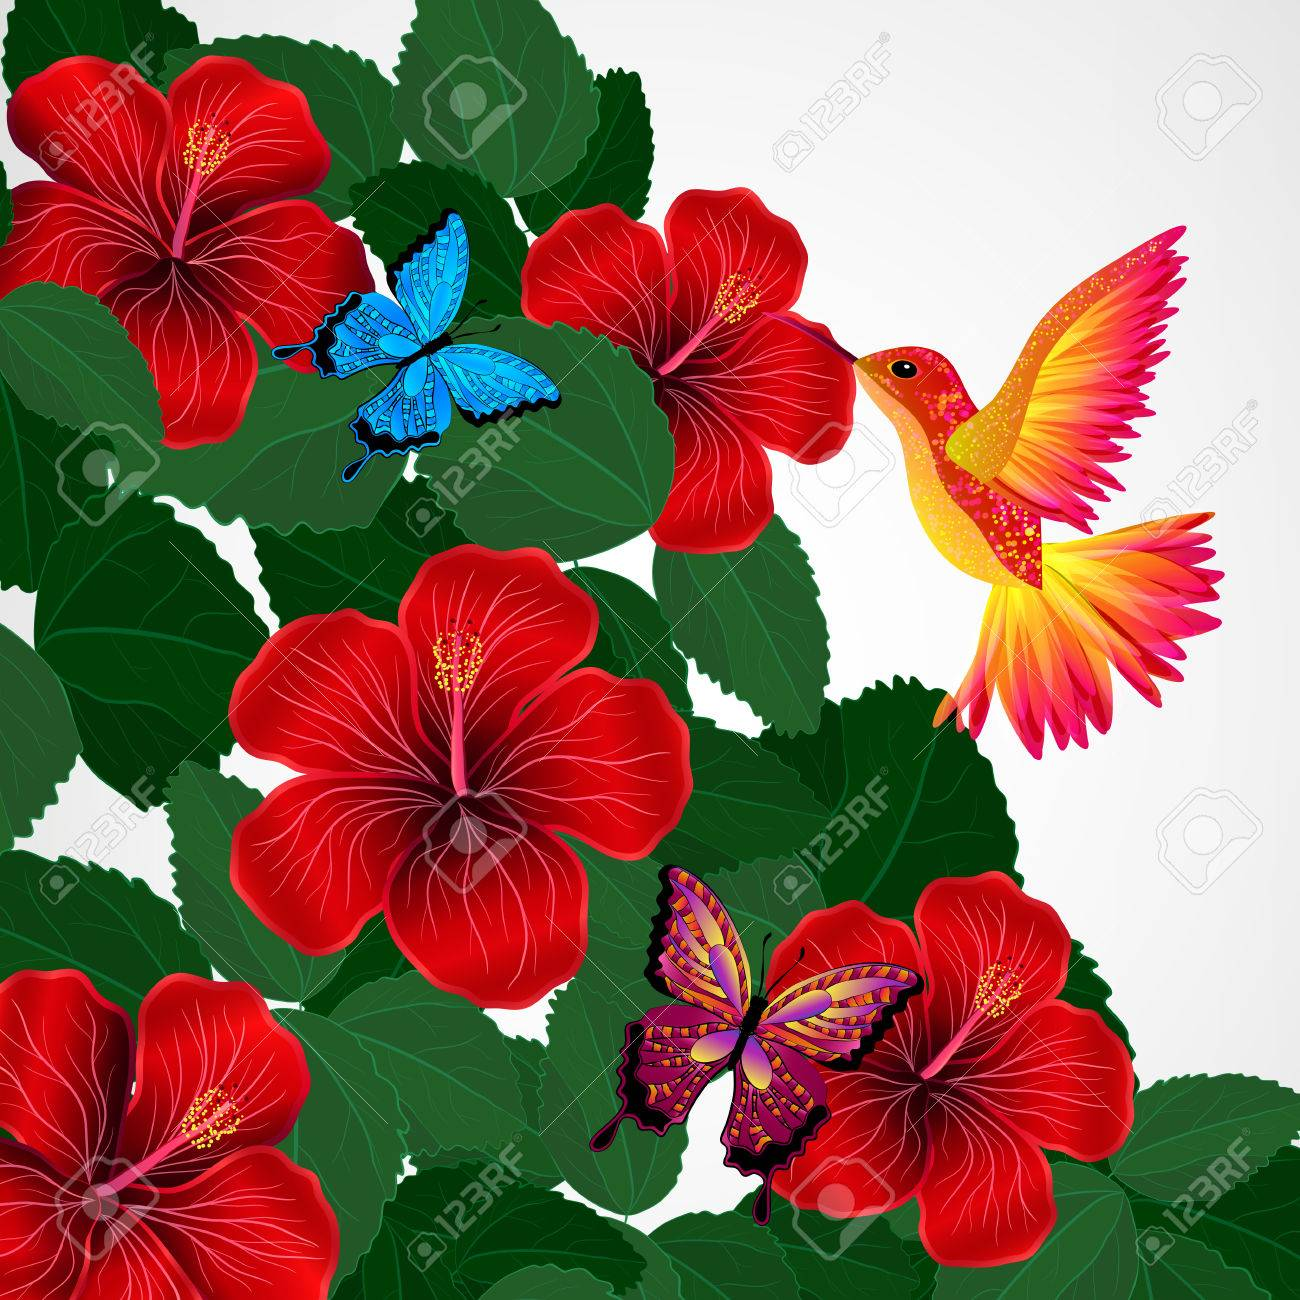 Floral Design Background Hibiscus Flowers With Bird Butterflies